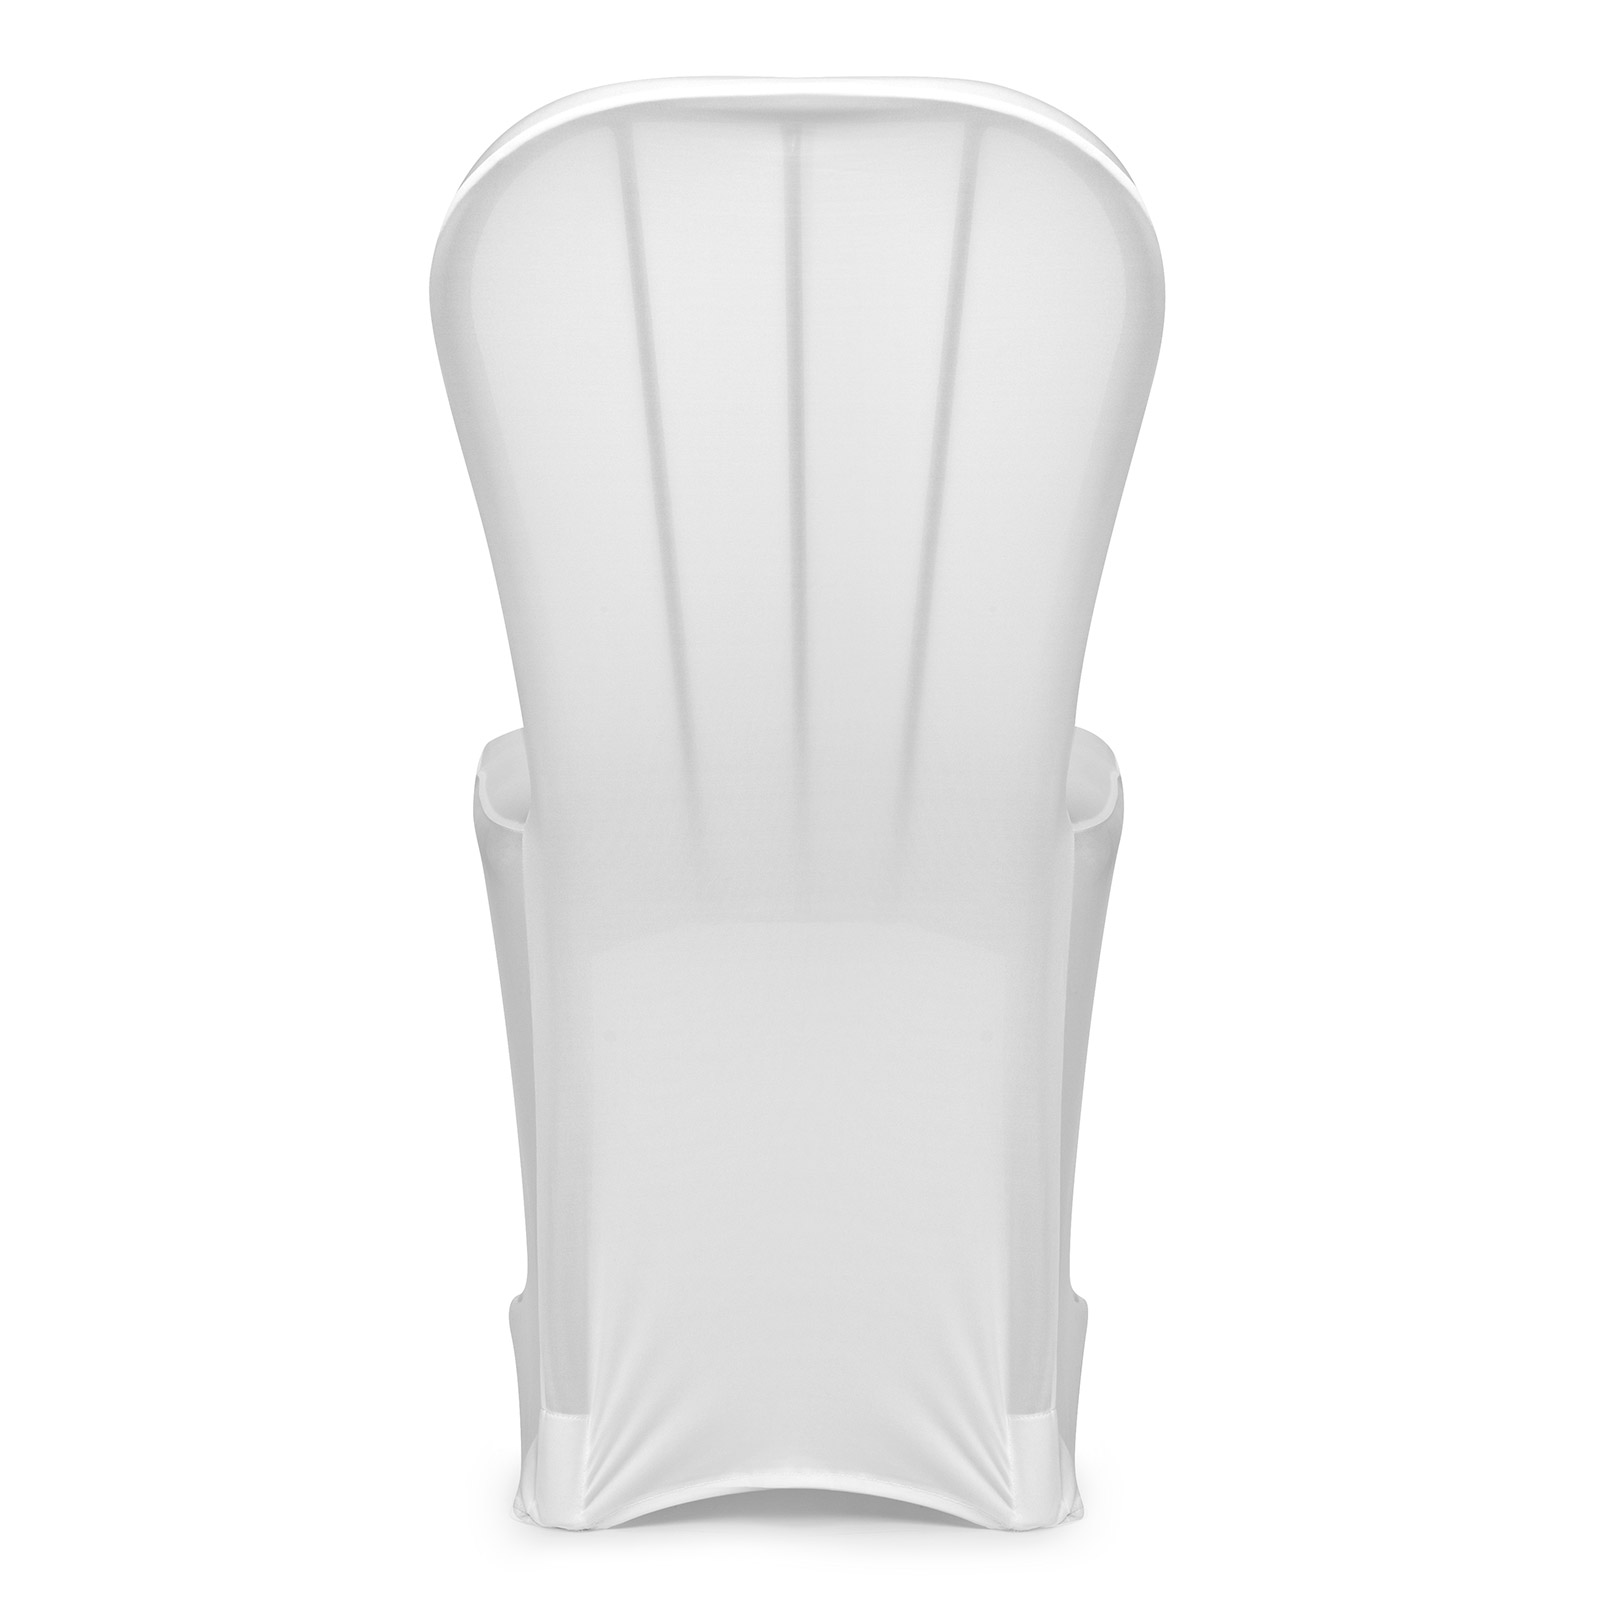 Wondrous 10 Elegant Fitted Stretch Banquet Chair Covers For Wedding Party Spandex White Andrewgaddart Wooden Chair Designs For Living Room Andrewgaddartcom